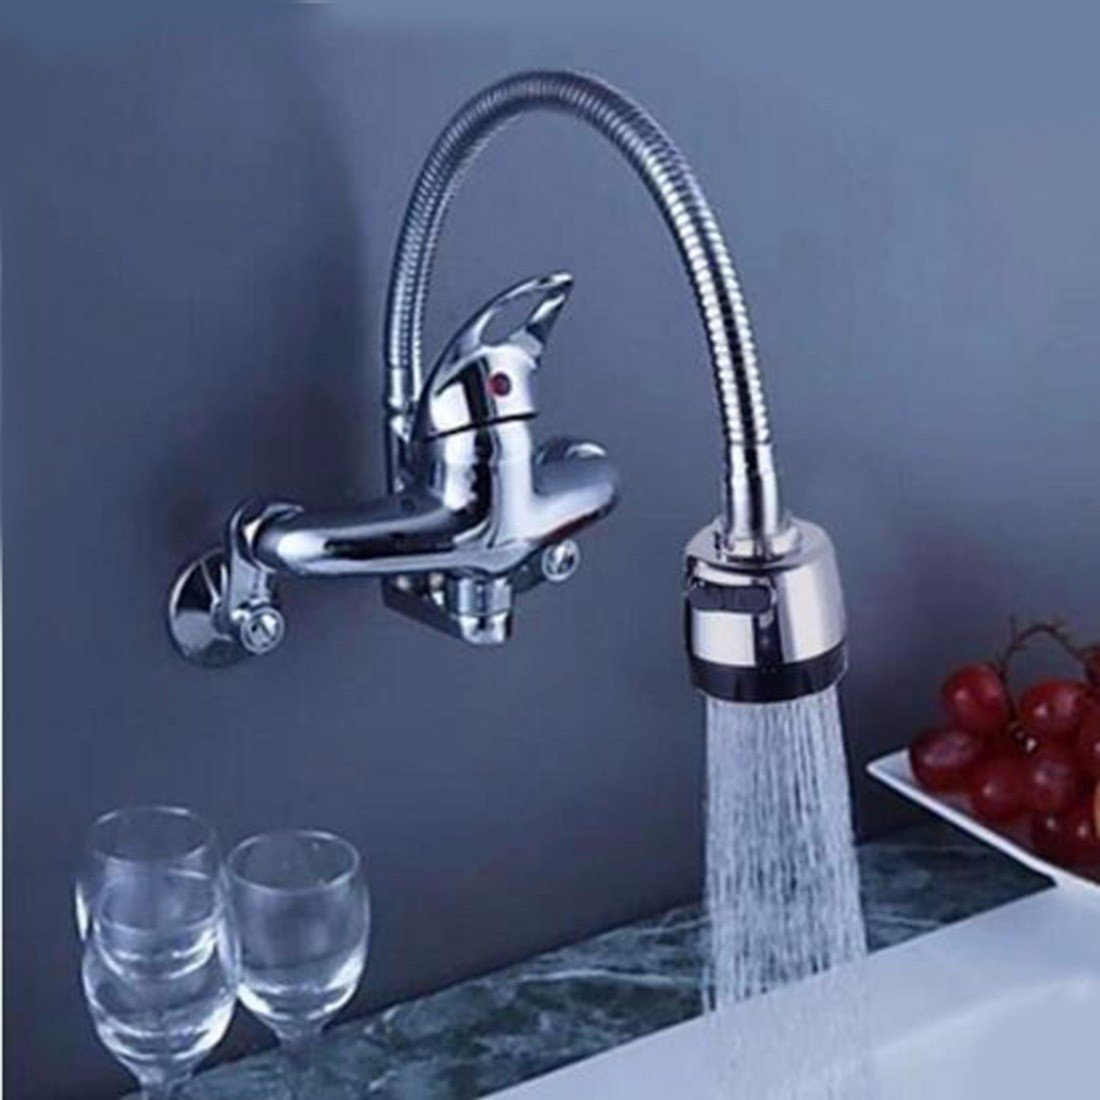 A Hlluya Professional Sink Mixer Tap Kitchen Faucet Mount the wall type water taps full copper hot and cold mixing valve kitchen washing dishes bin balcony laundry pool to the shower,